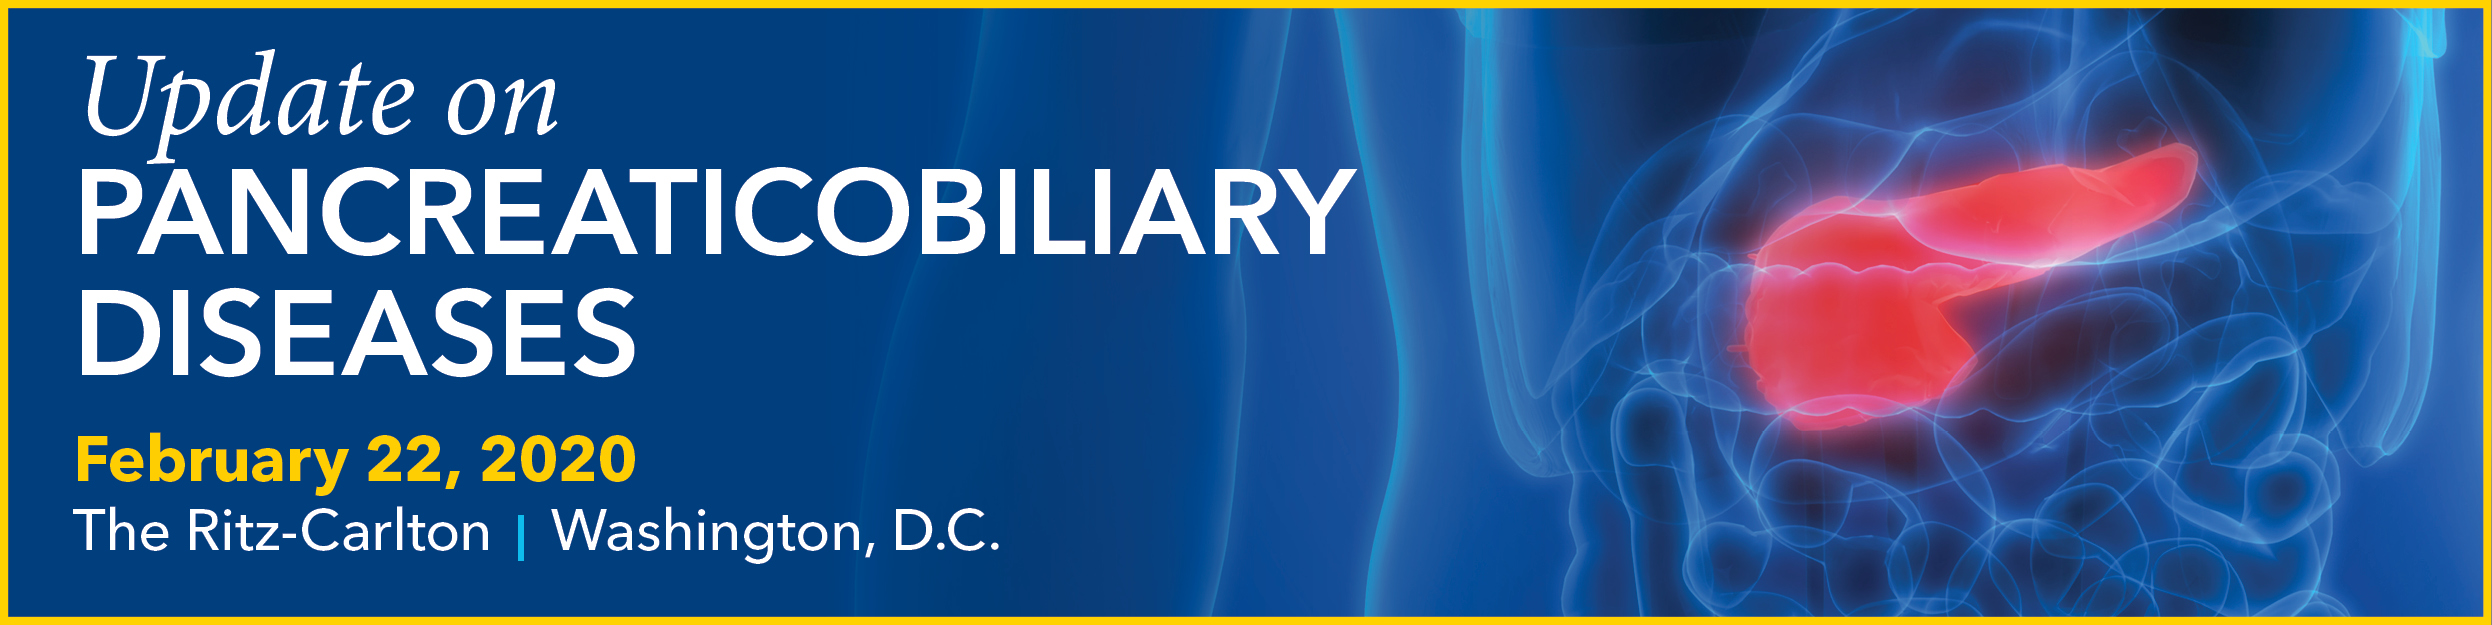 2020 Update on Pancreaticobiliary Diseases Banner